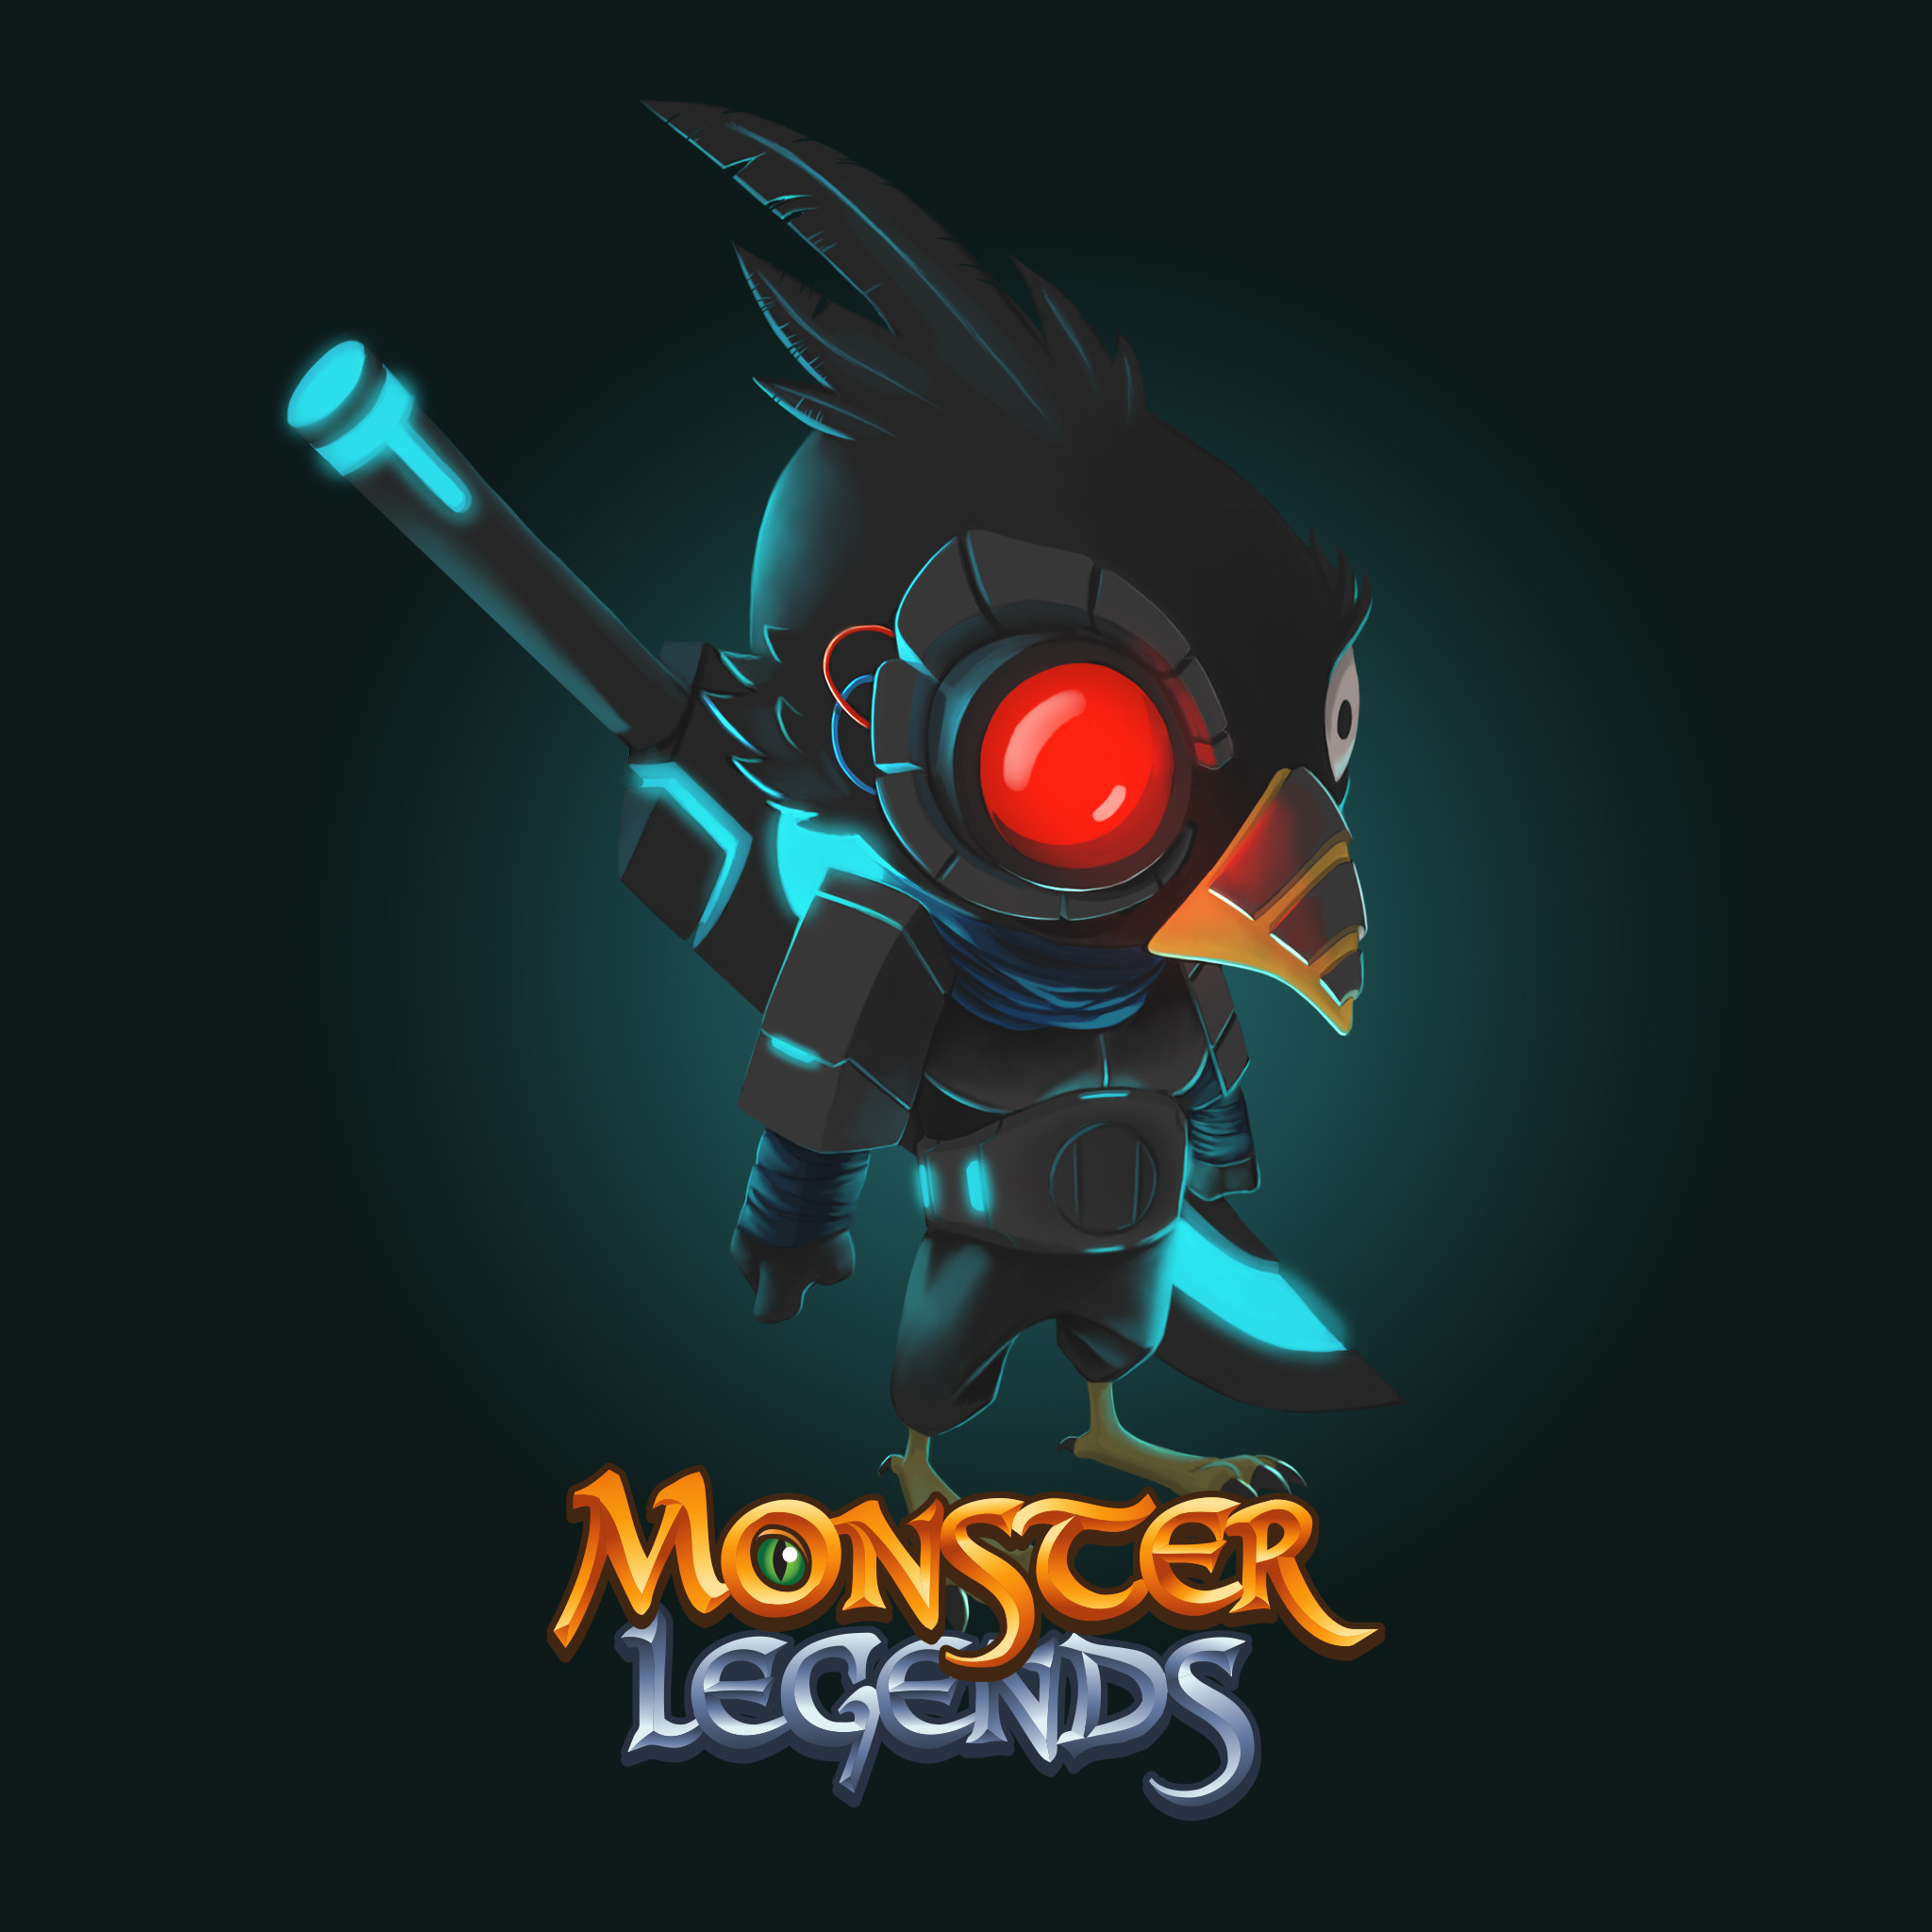 Monster Legends Android, iPhone, iPad Wallpaper